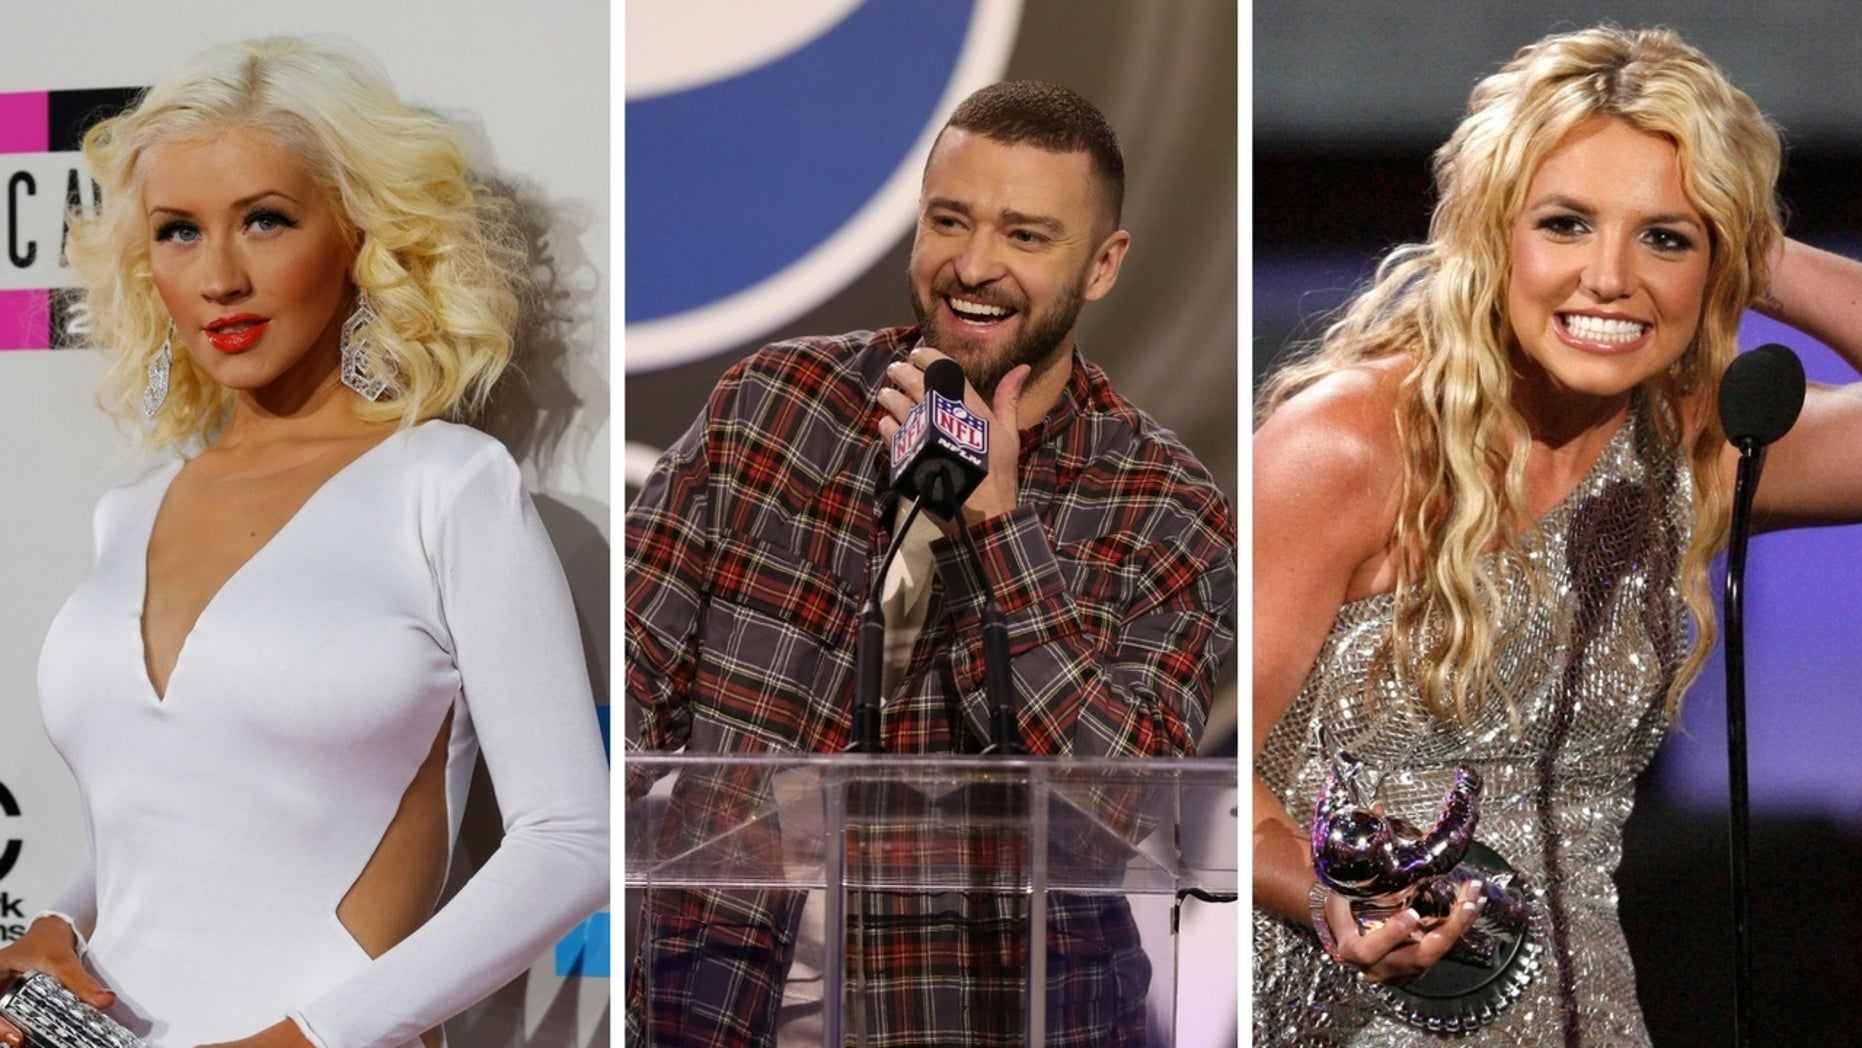 """Christina Aguilera revealed she and Britney Spears both had crushes on Justin Timberlake during their """"Mickey Mouse Club"""" days."""